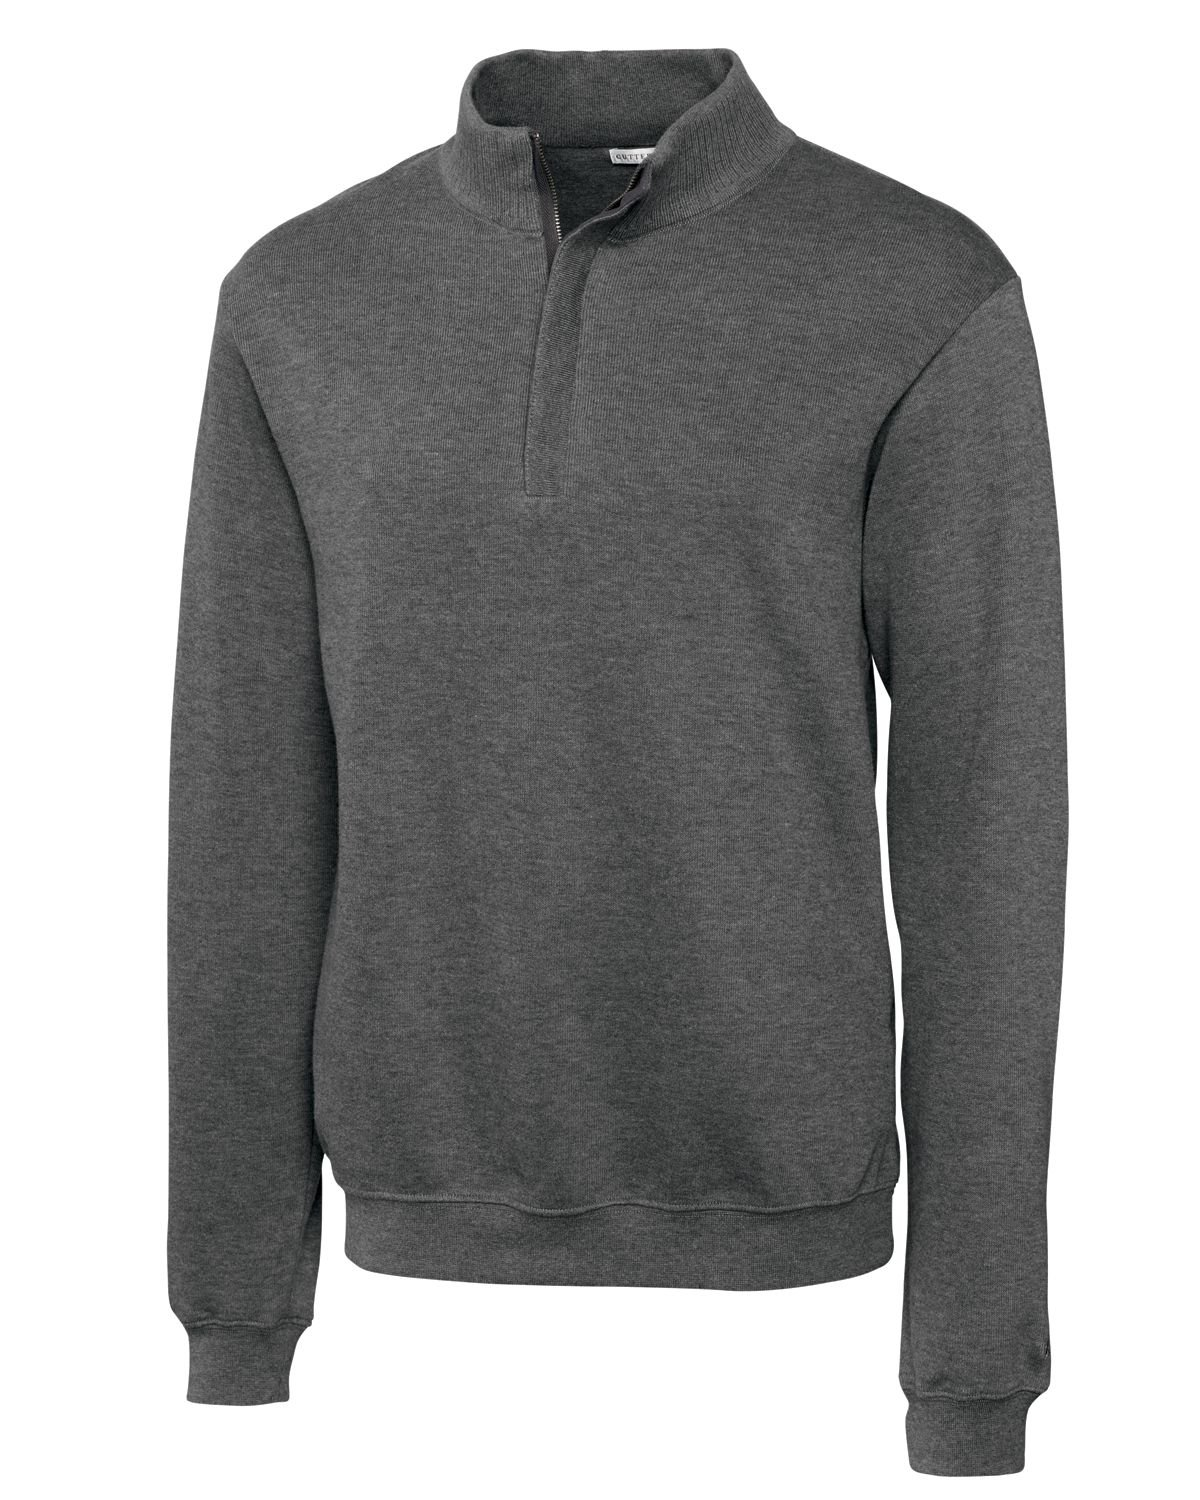 Cutter & Buck Men's Big-Tall Journey Supima Flatback Half Zip, Charcoal Heather, 1X/Big